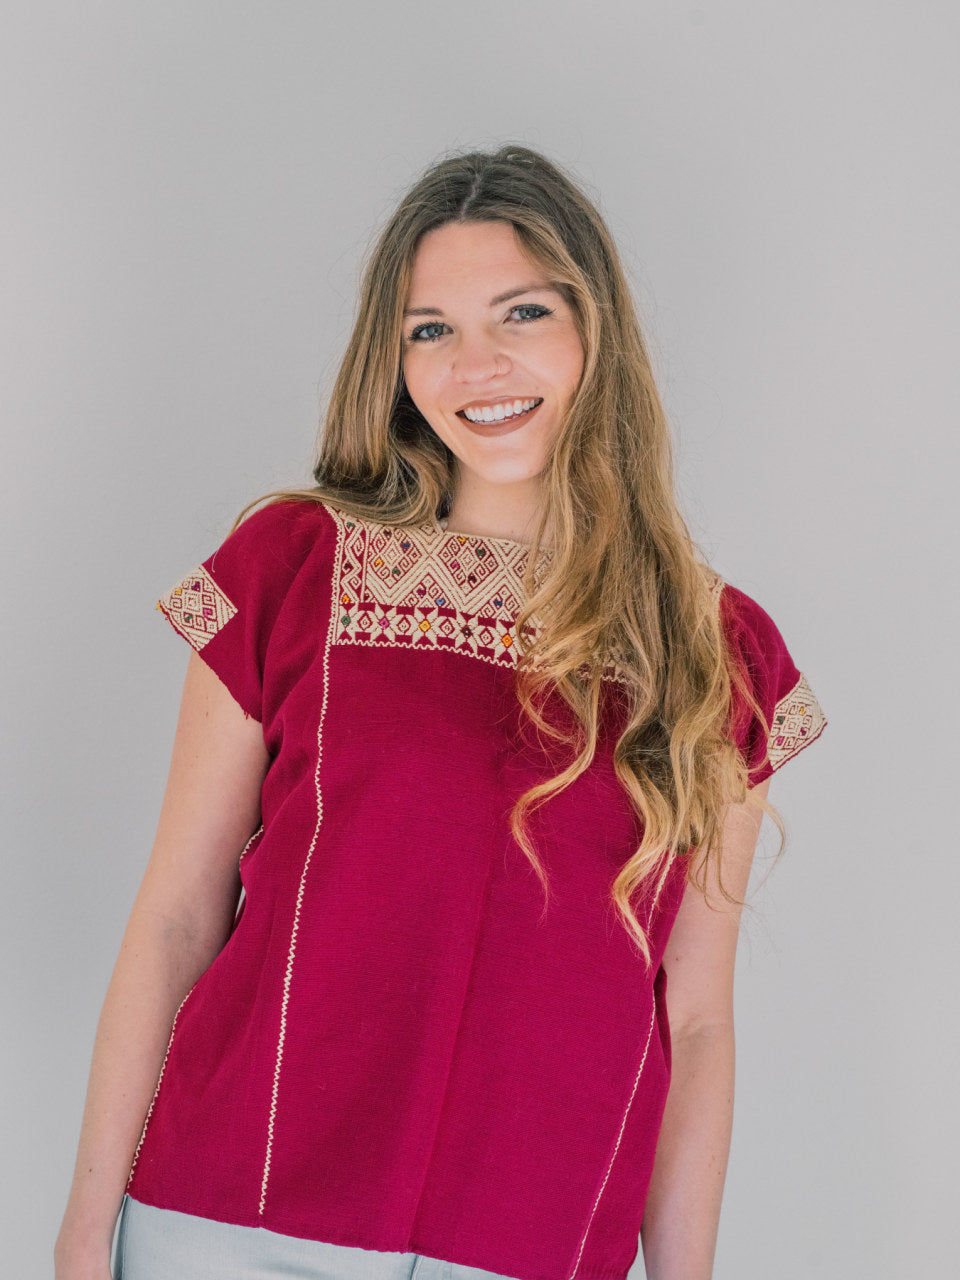 Huipil Magenta Top (S/M) - Handmade, Embroidered Mexican Women Top - Chokolita